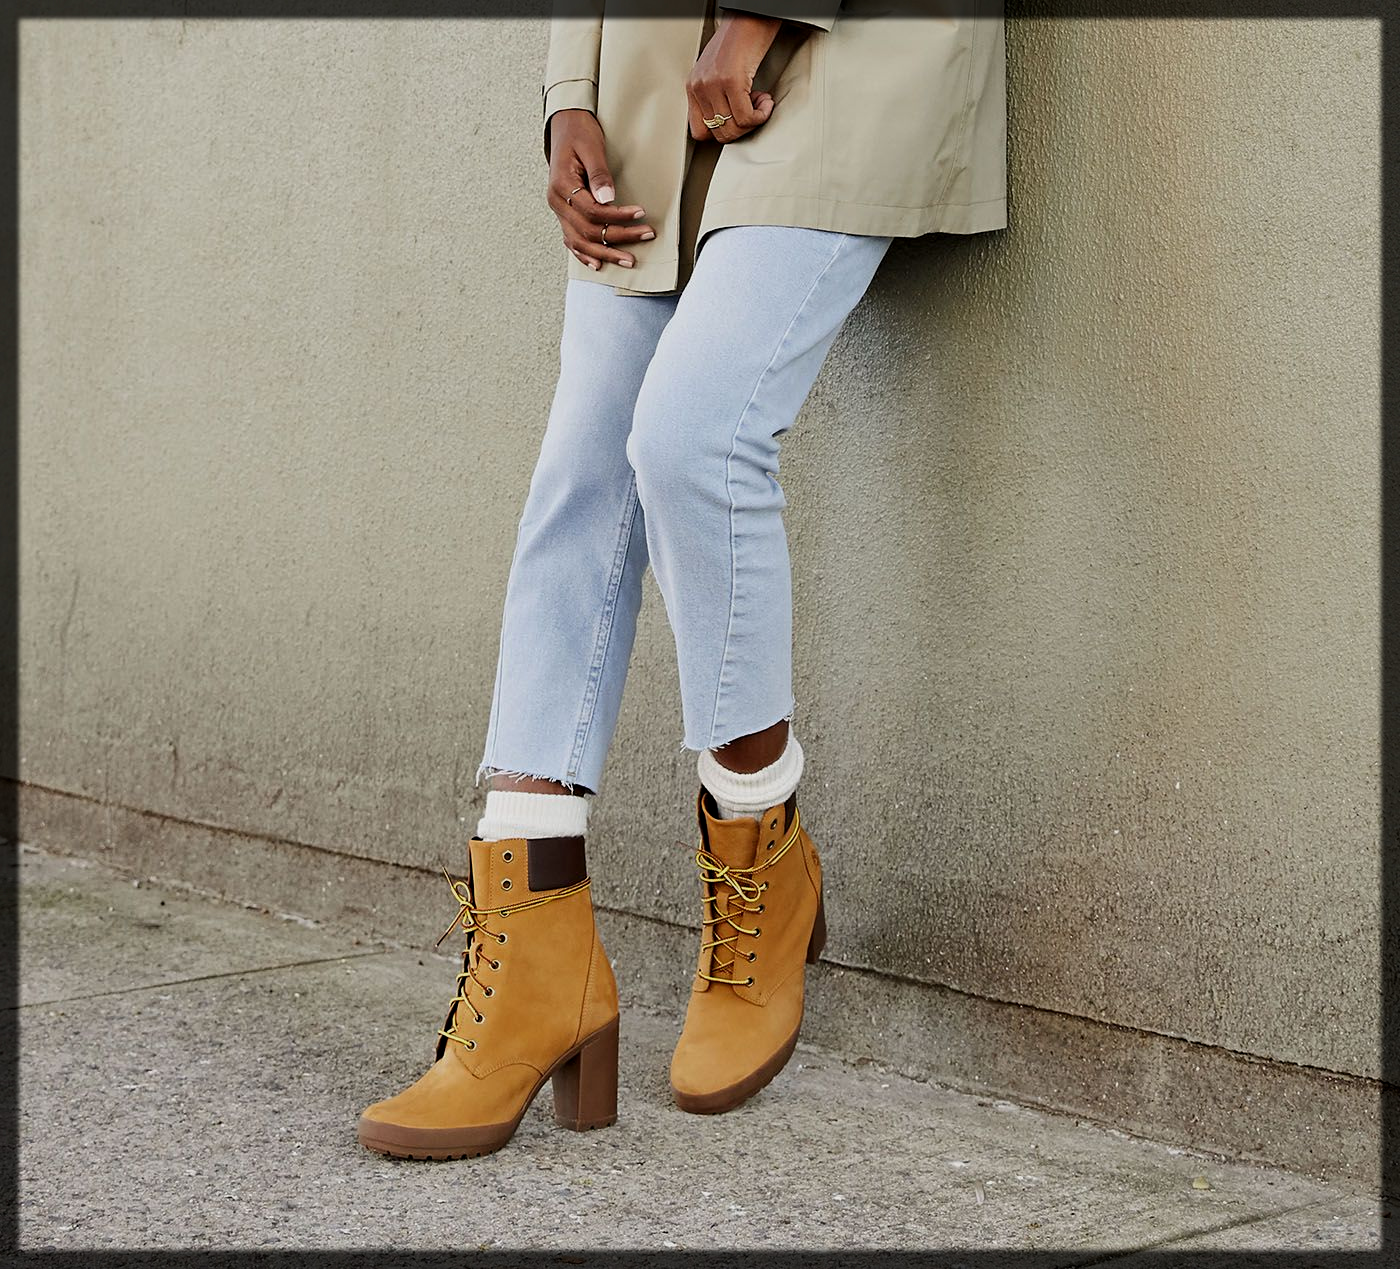 Attractive Camdale Fashion Boots for Women